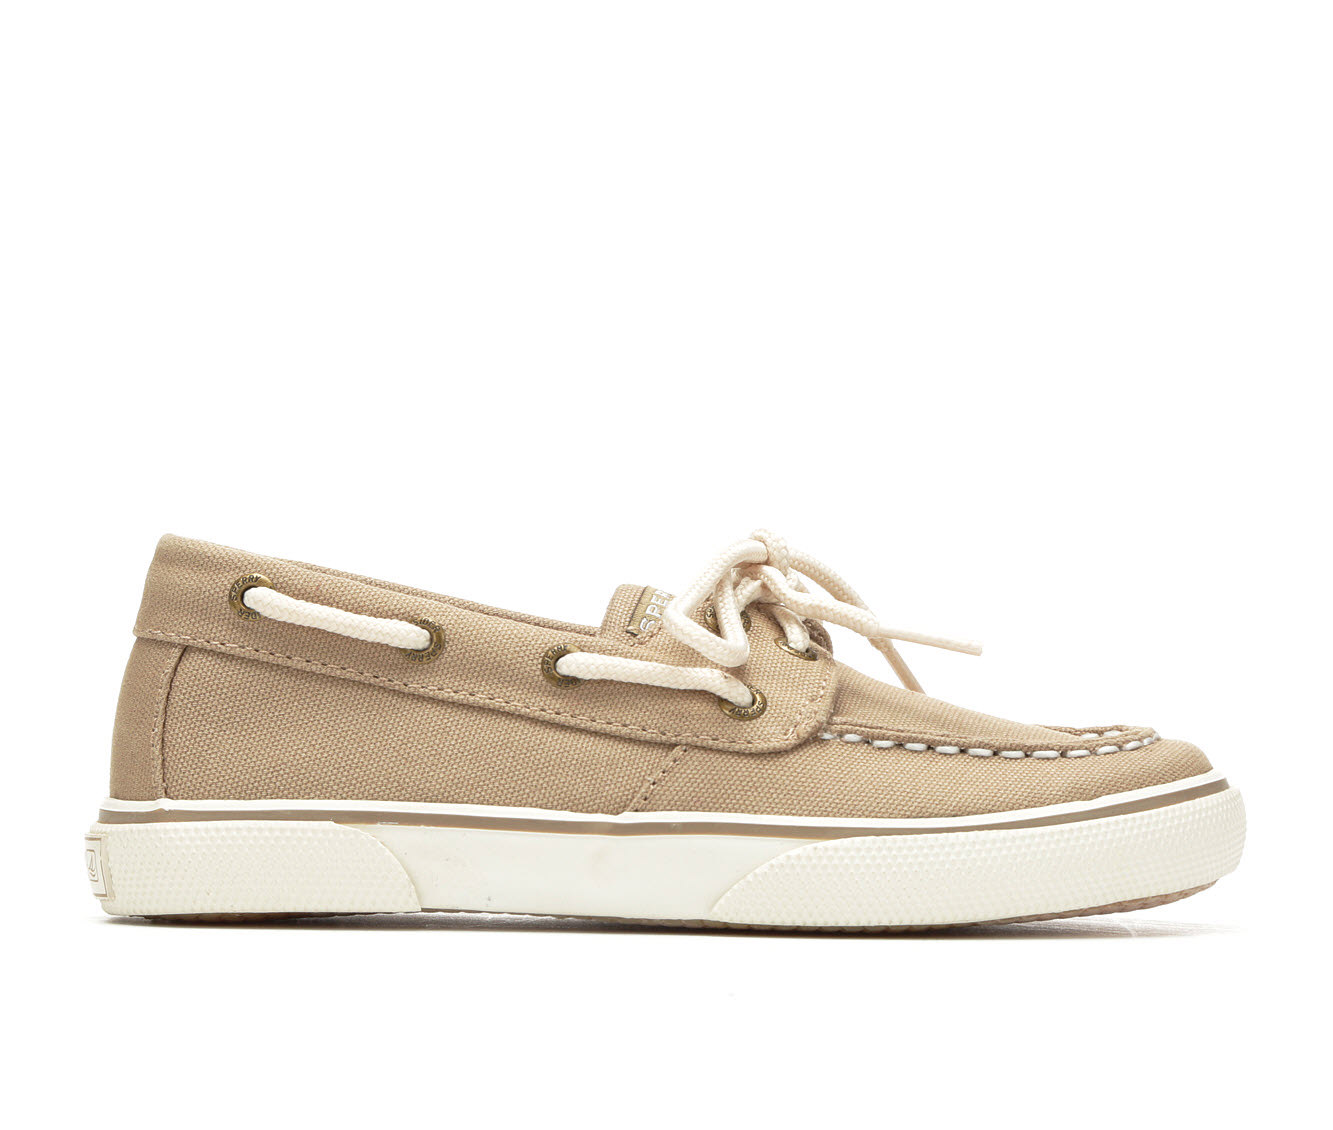 Boys' Sperry Halyard Boat Shoes (Beige)